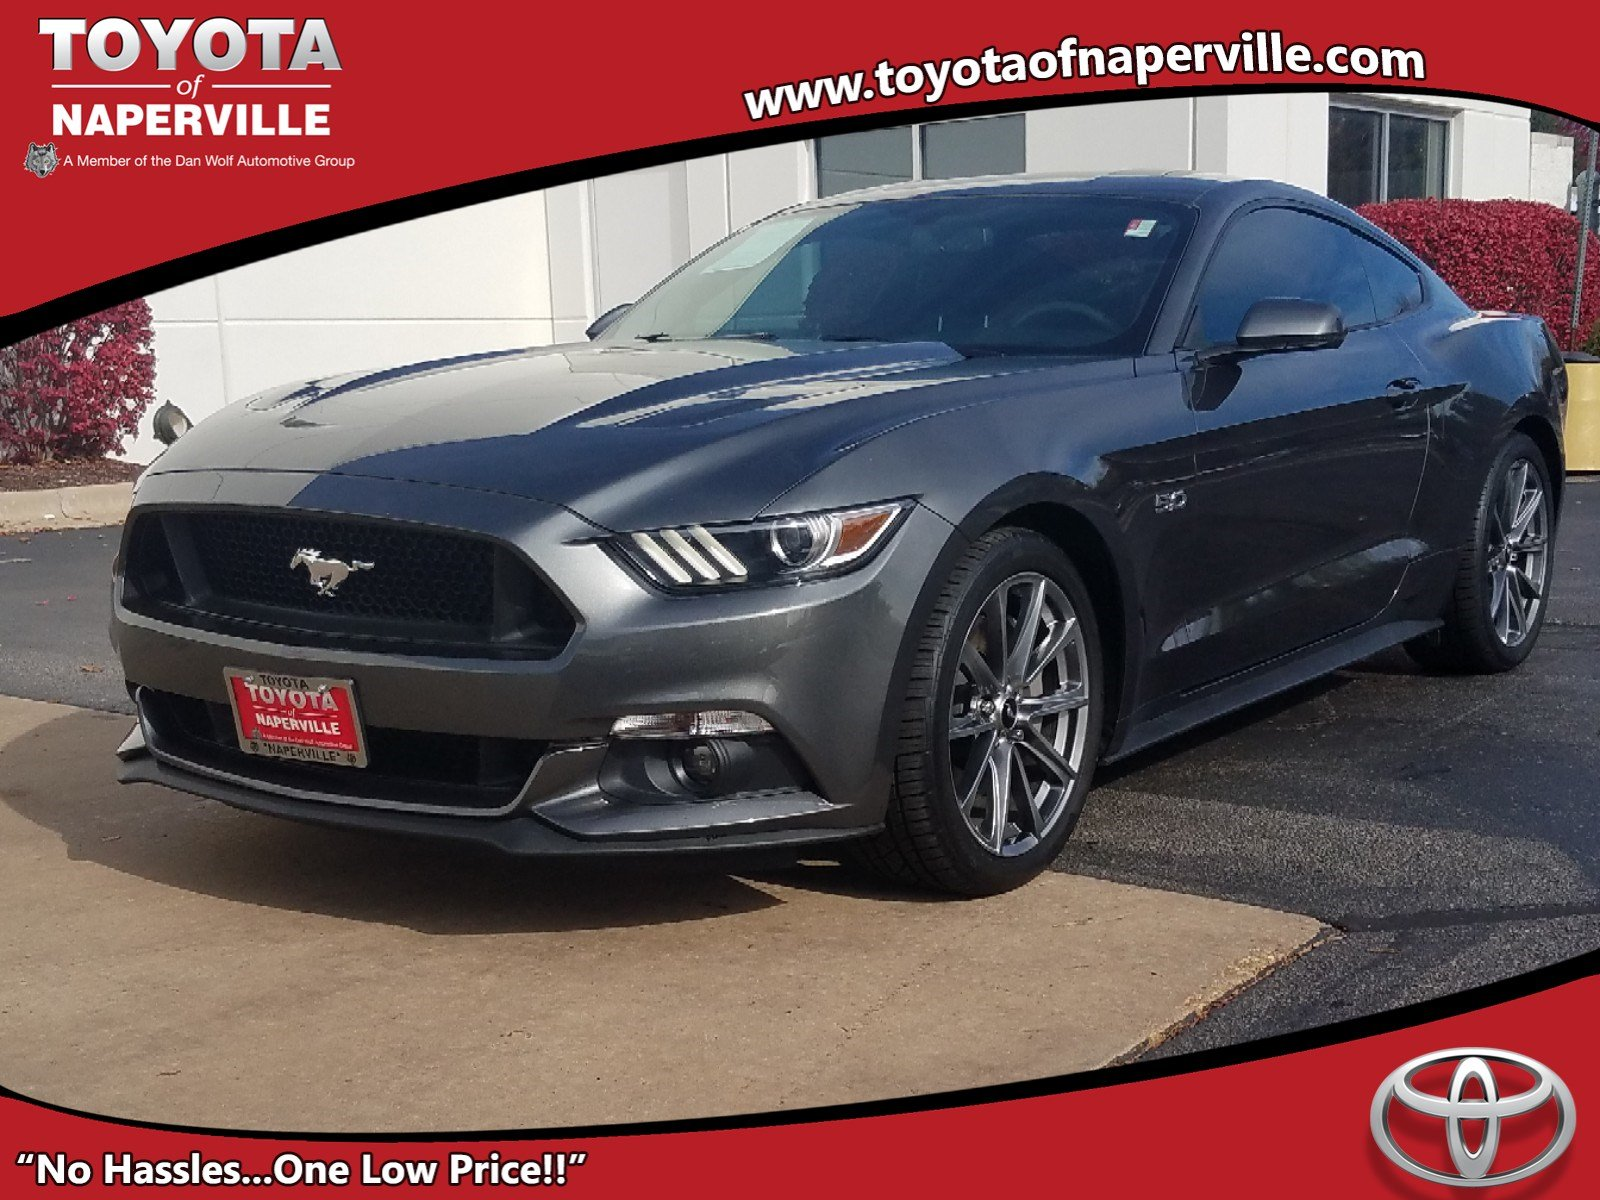 Pre Owned 2016 Ford Mustang GT 2D Coupe in Naperville